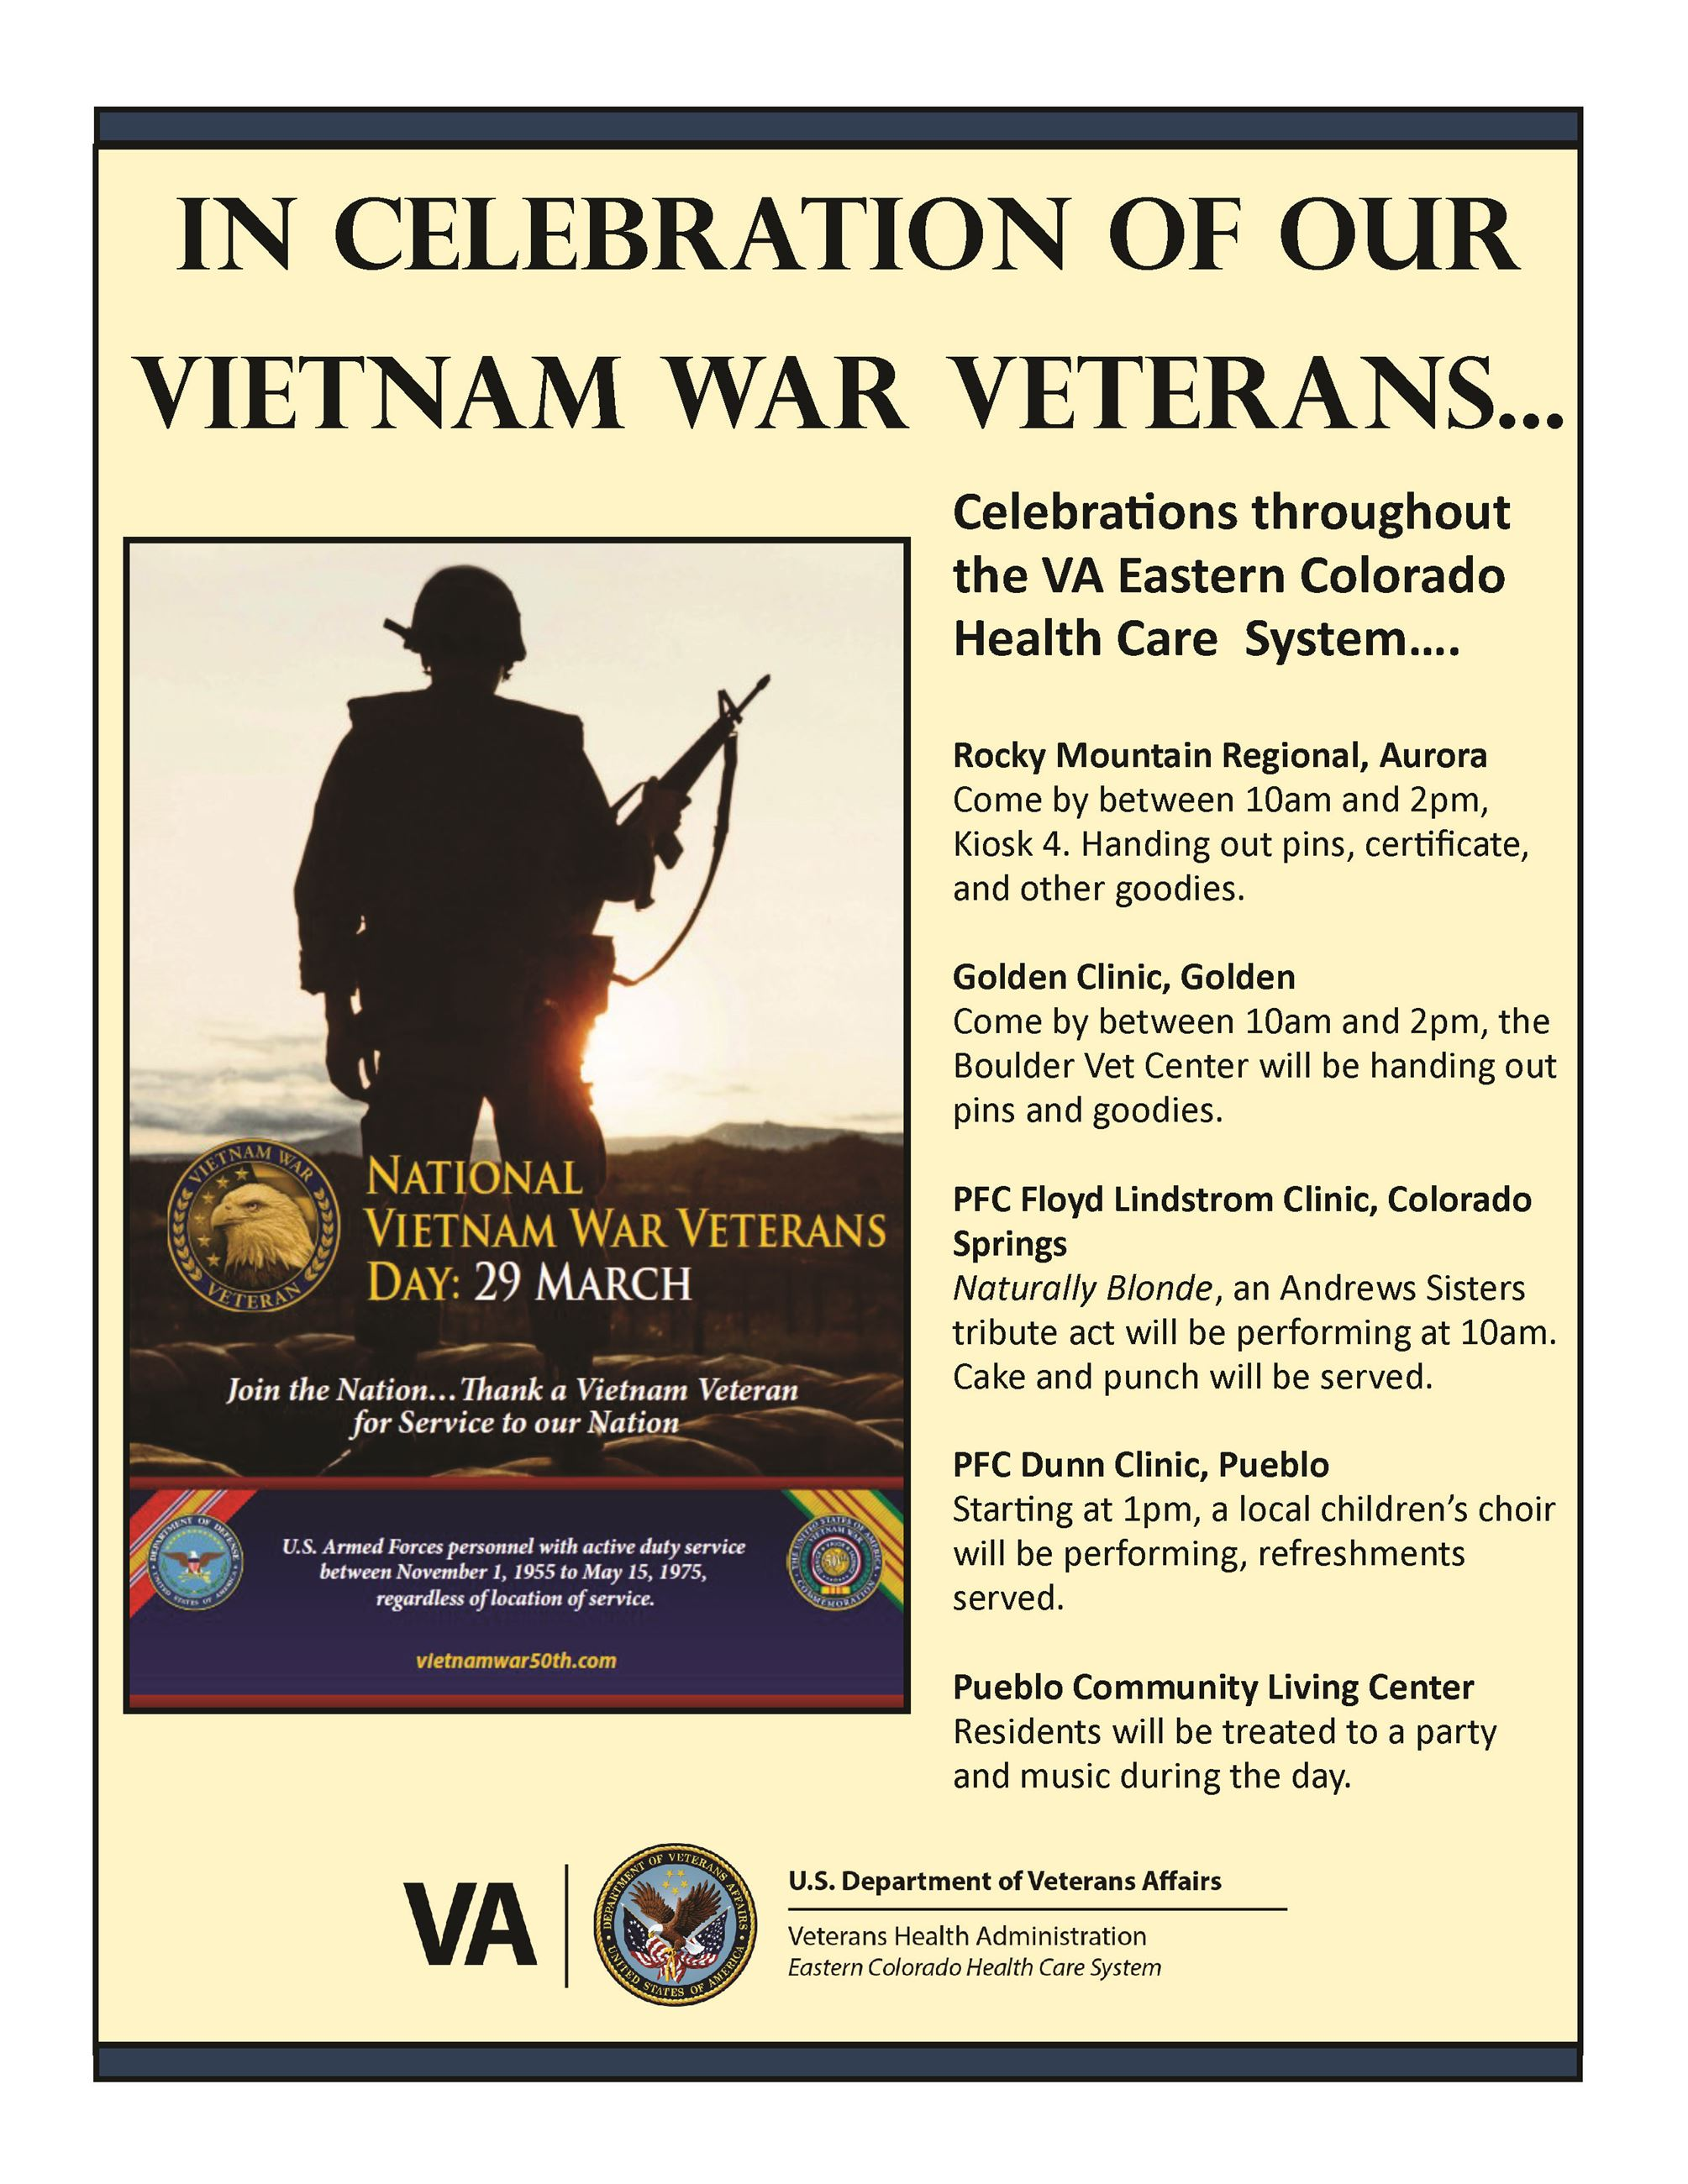 In Celebration of Our Vietnam War Vets - Celebrations throughout the VA Eastern Colorado Health Care